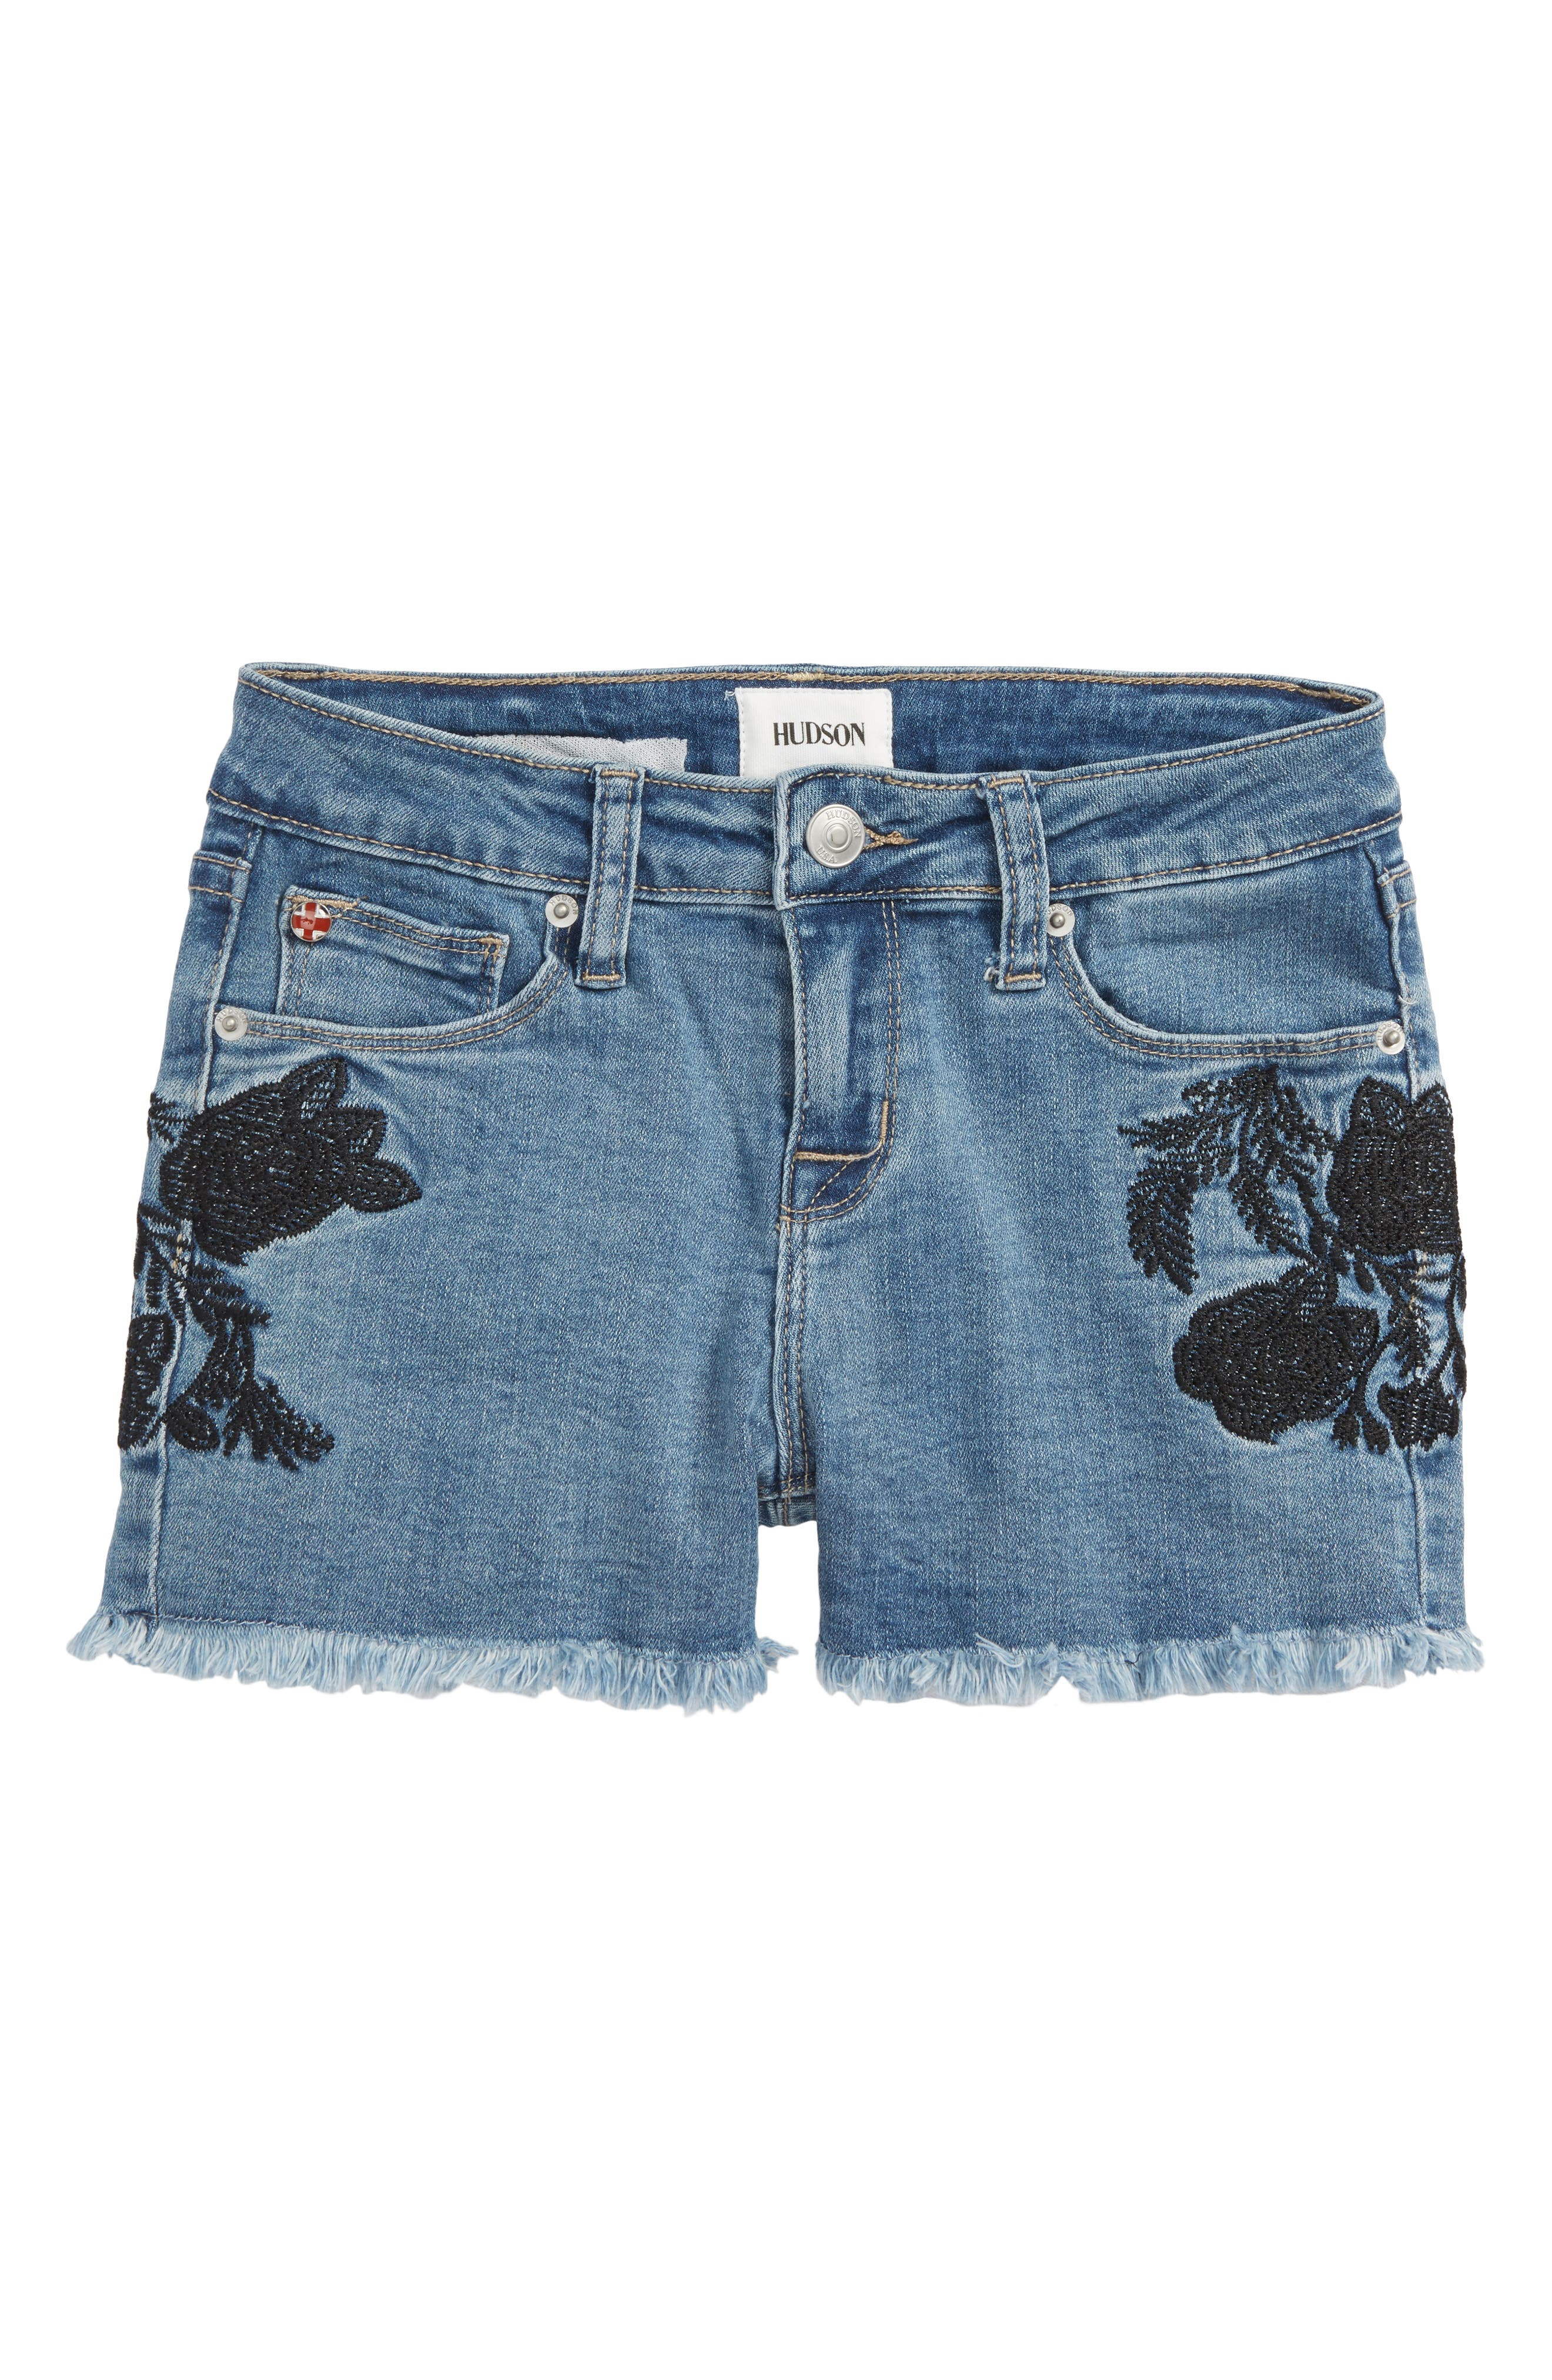 Floral Embroidery Frayed Hem Shorts,                         Main,                         color, Crown Blue